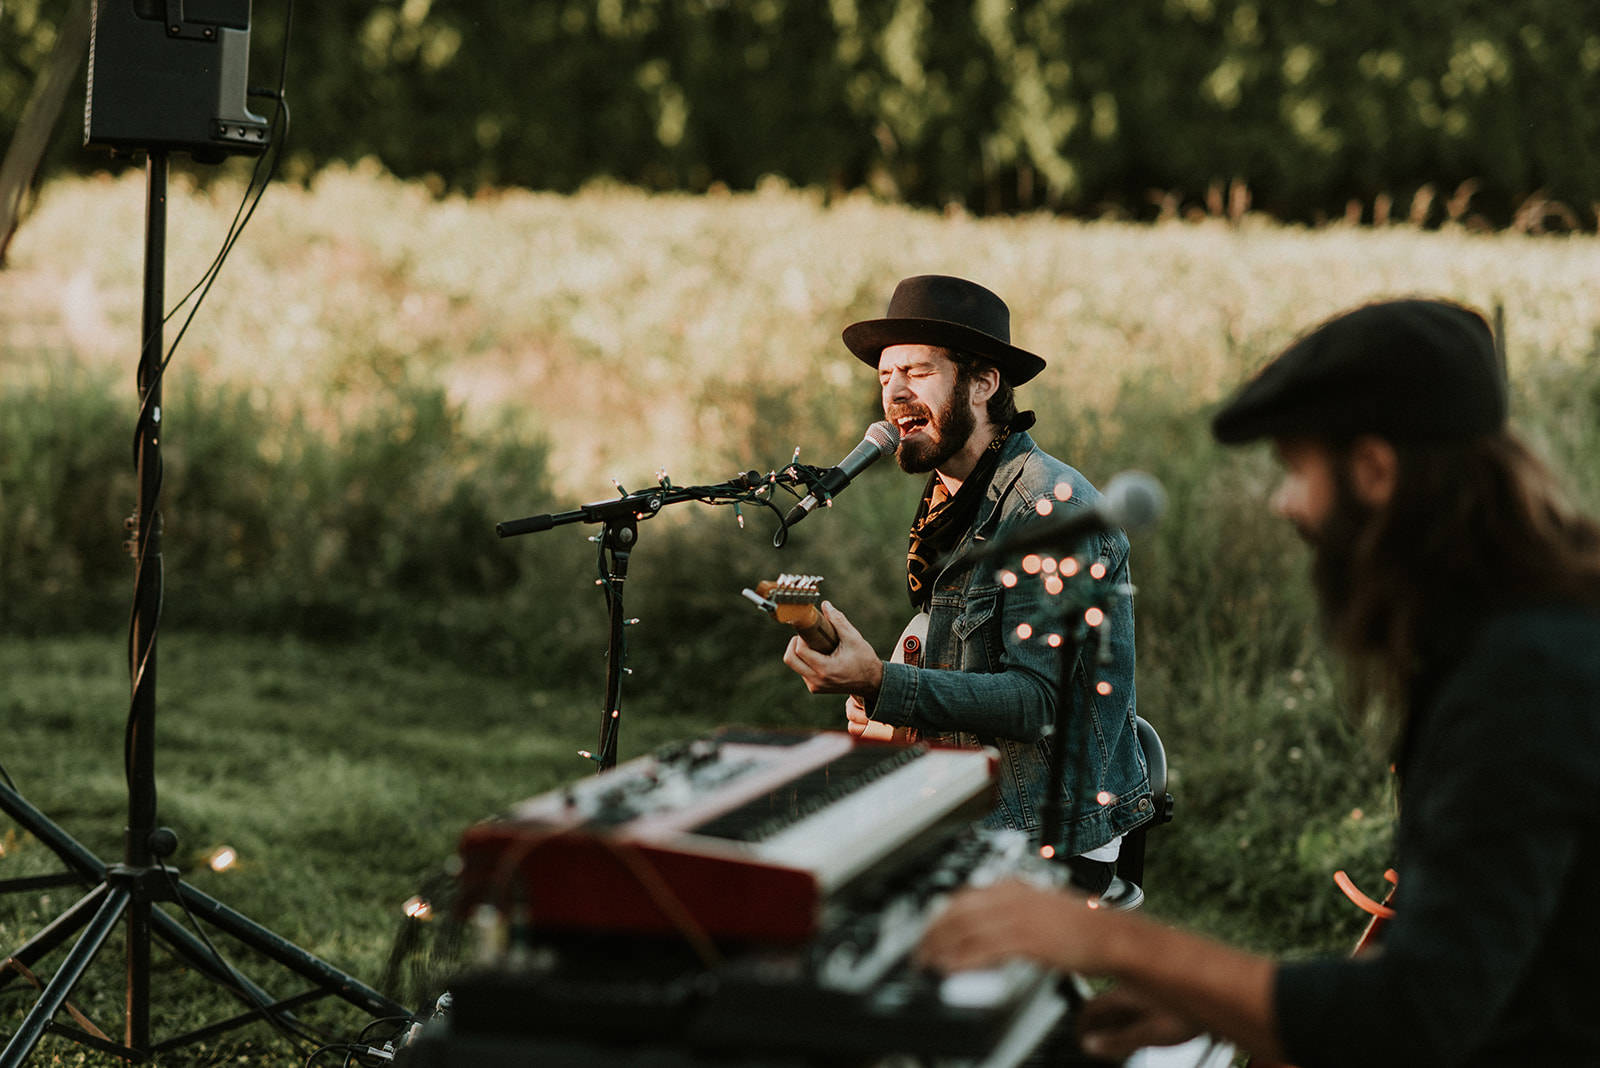 Starting July 23, the Friday evening Sun & Soil Concert Series showcases a diverse mix of local musicians in stellar locations. Photo courtesy Tourism Abbotsford